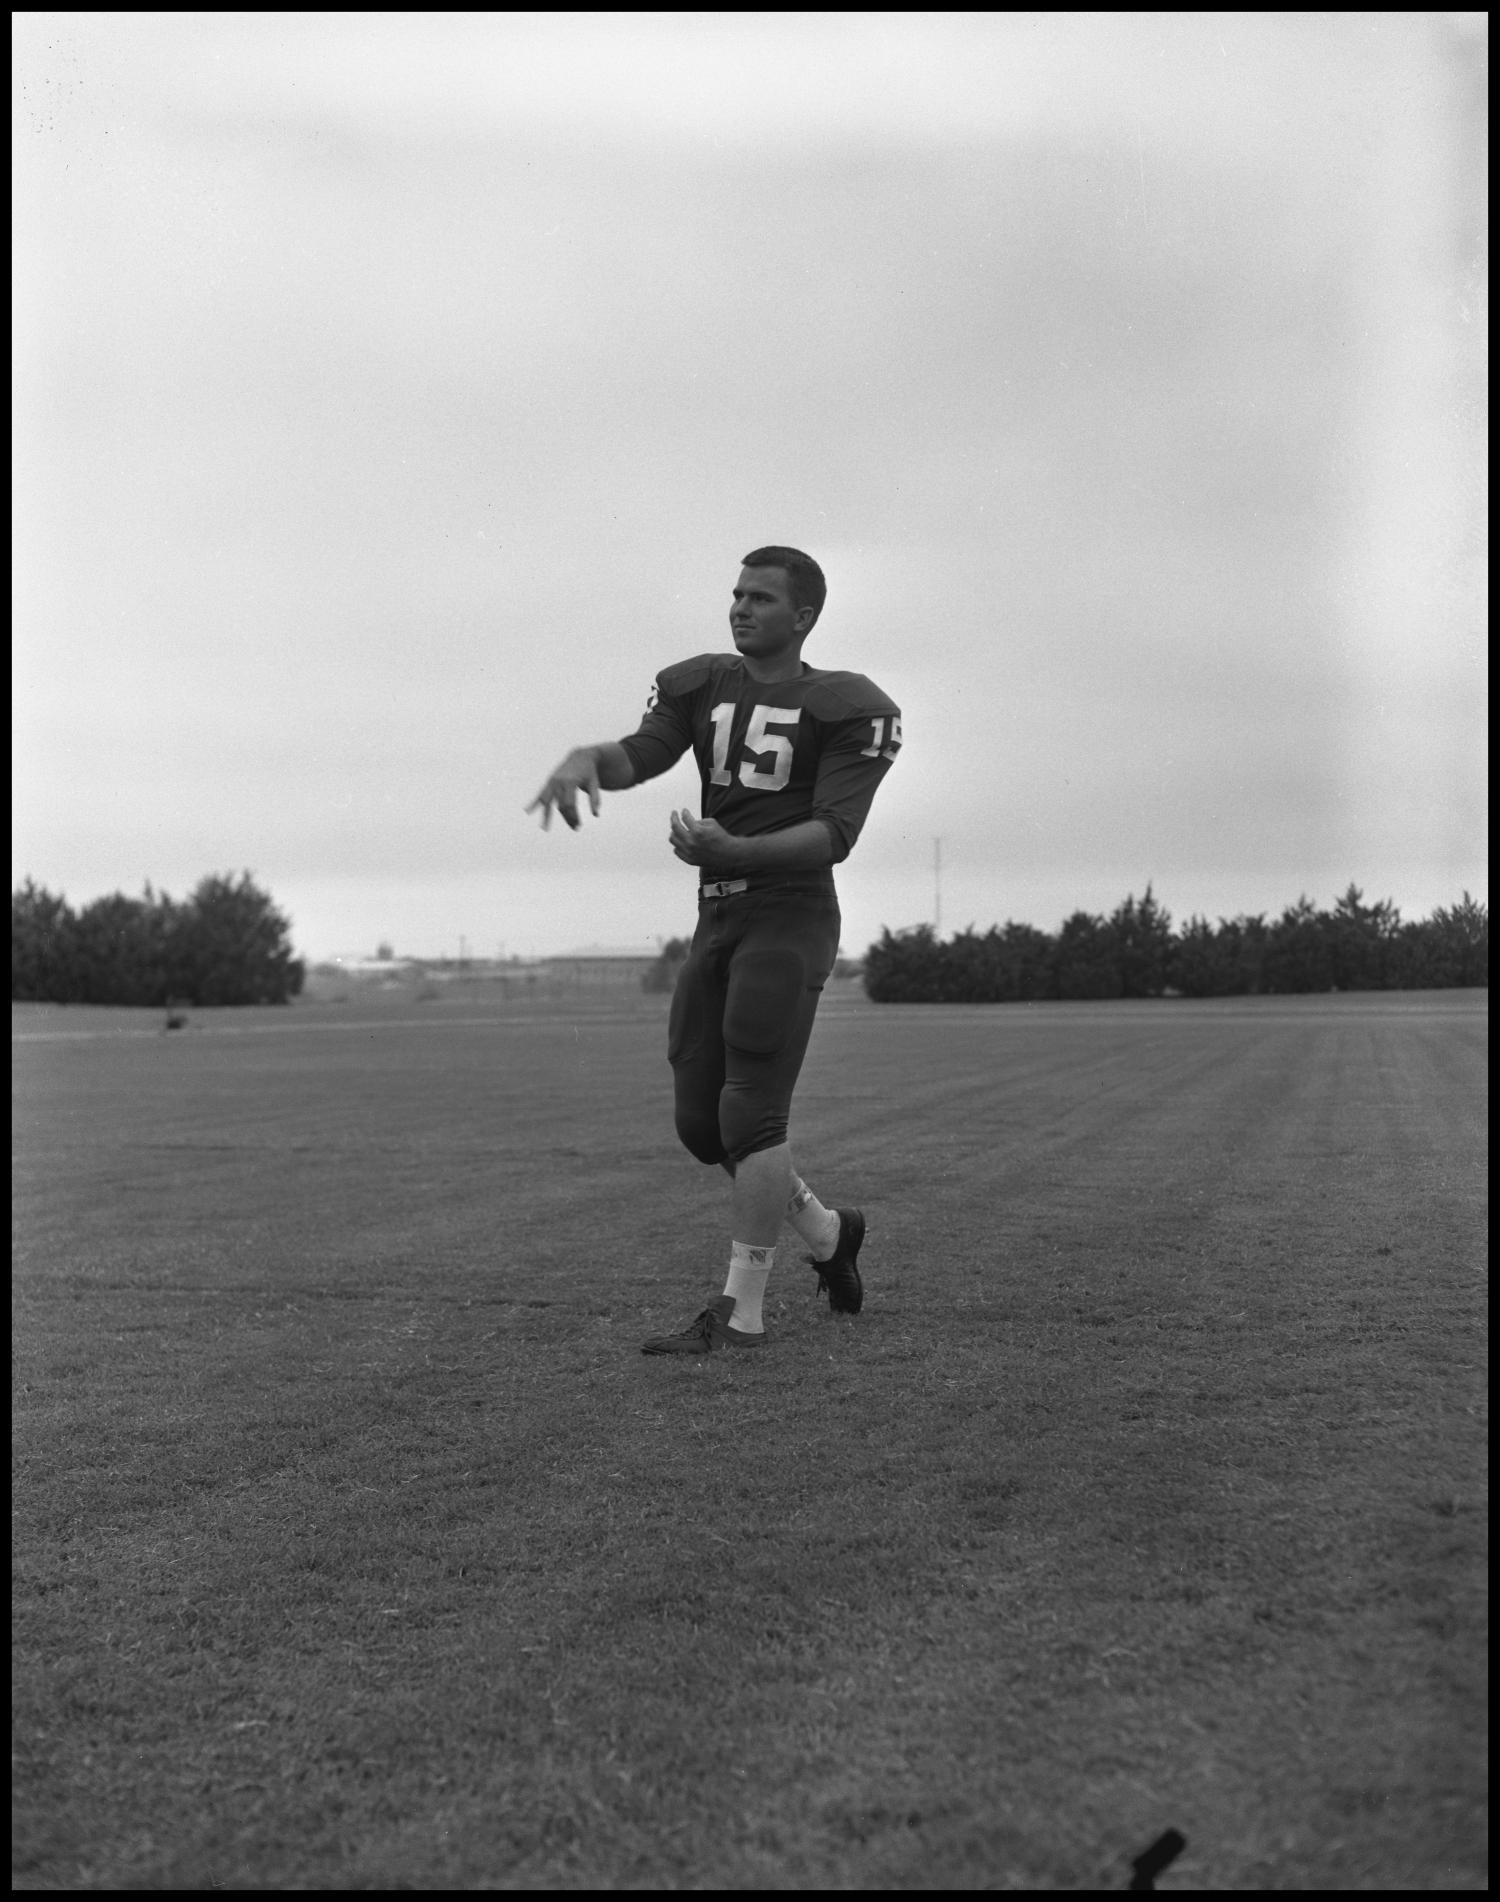 [Football Player No. 15 in a Throwing Position, September 1962]                                                                                                      [Sequence #]: 1 of 1